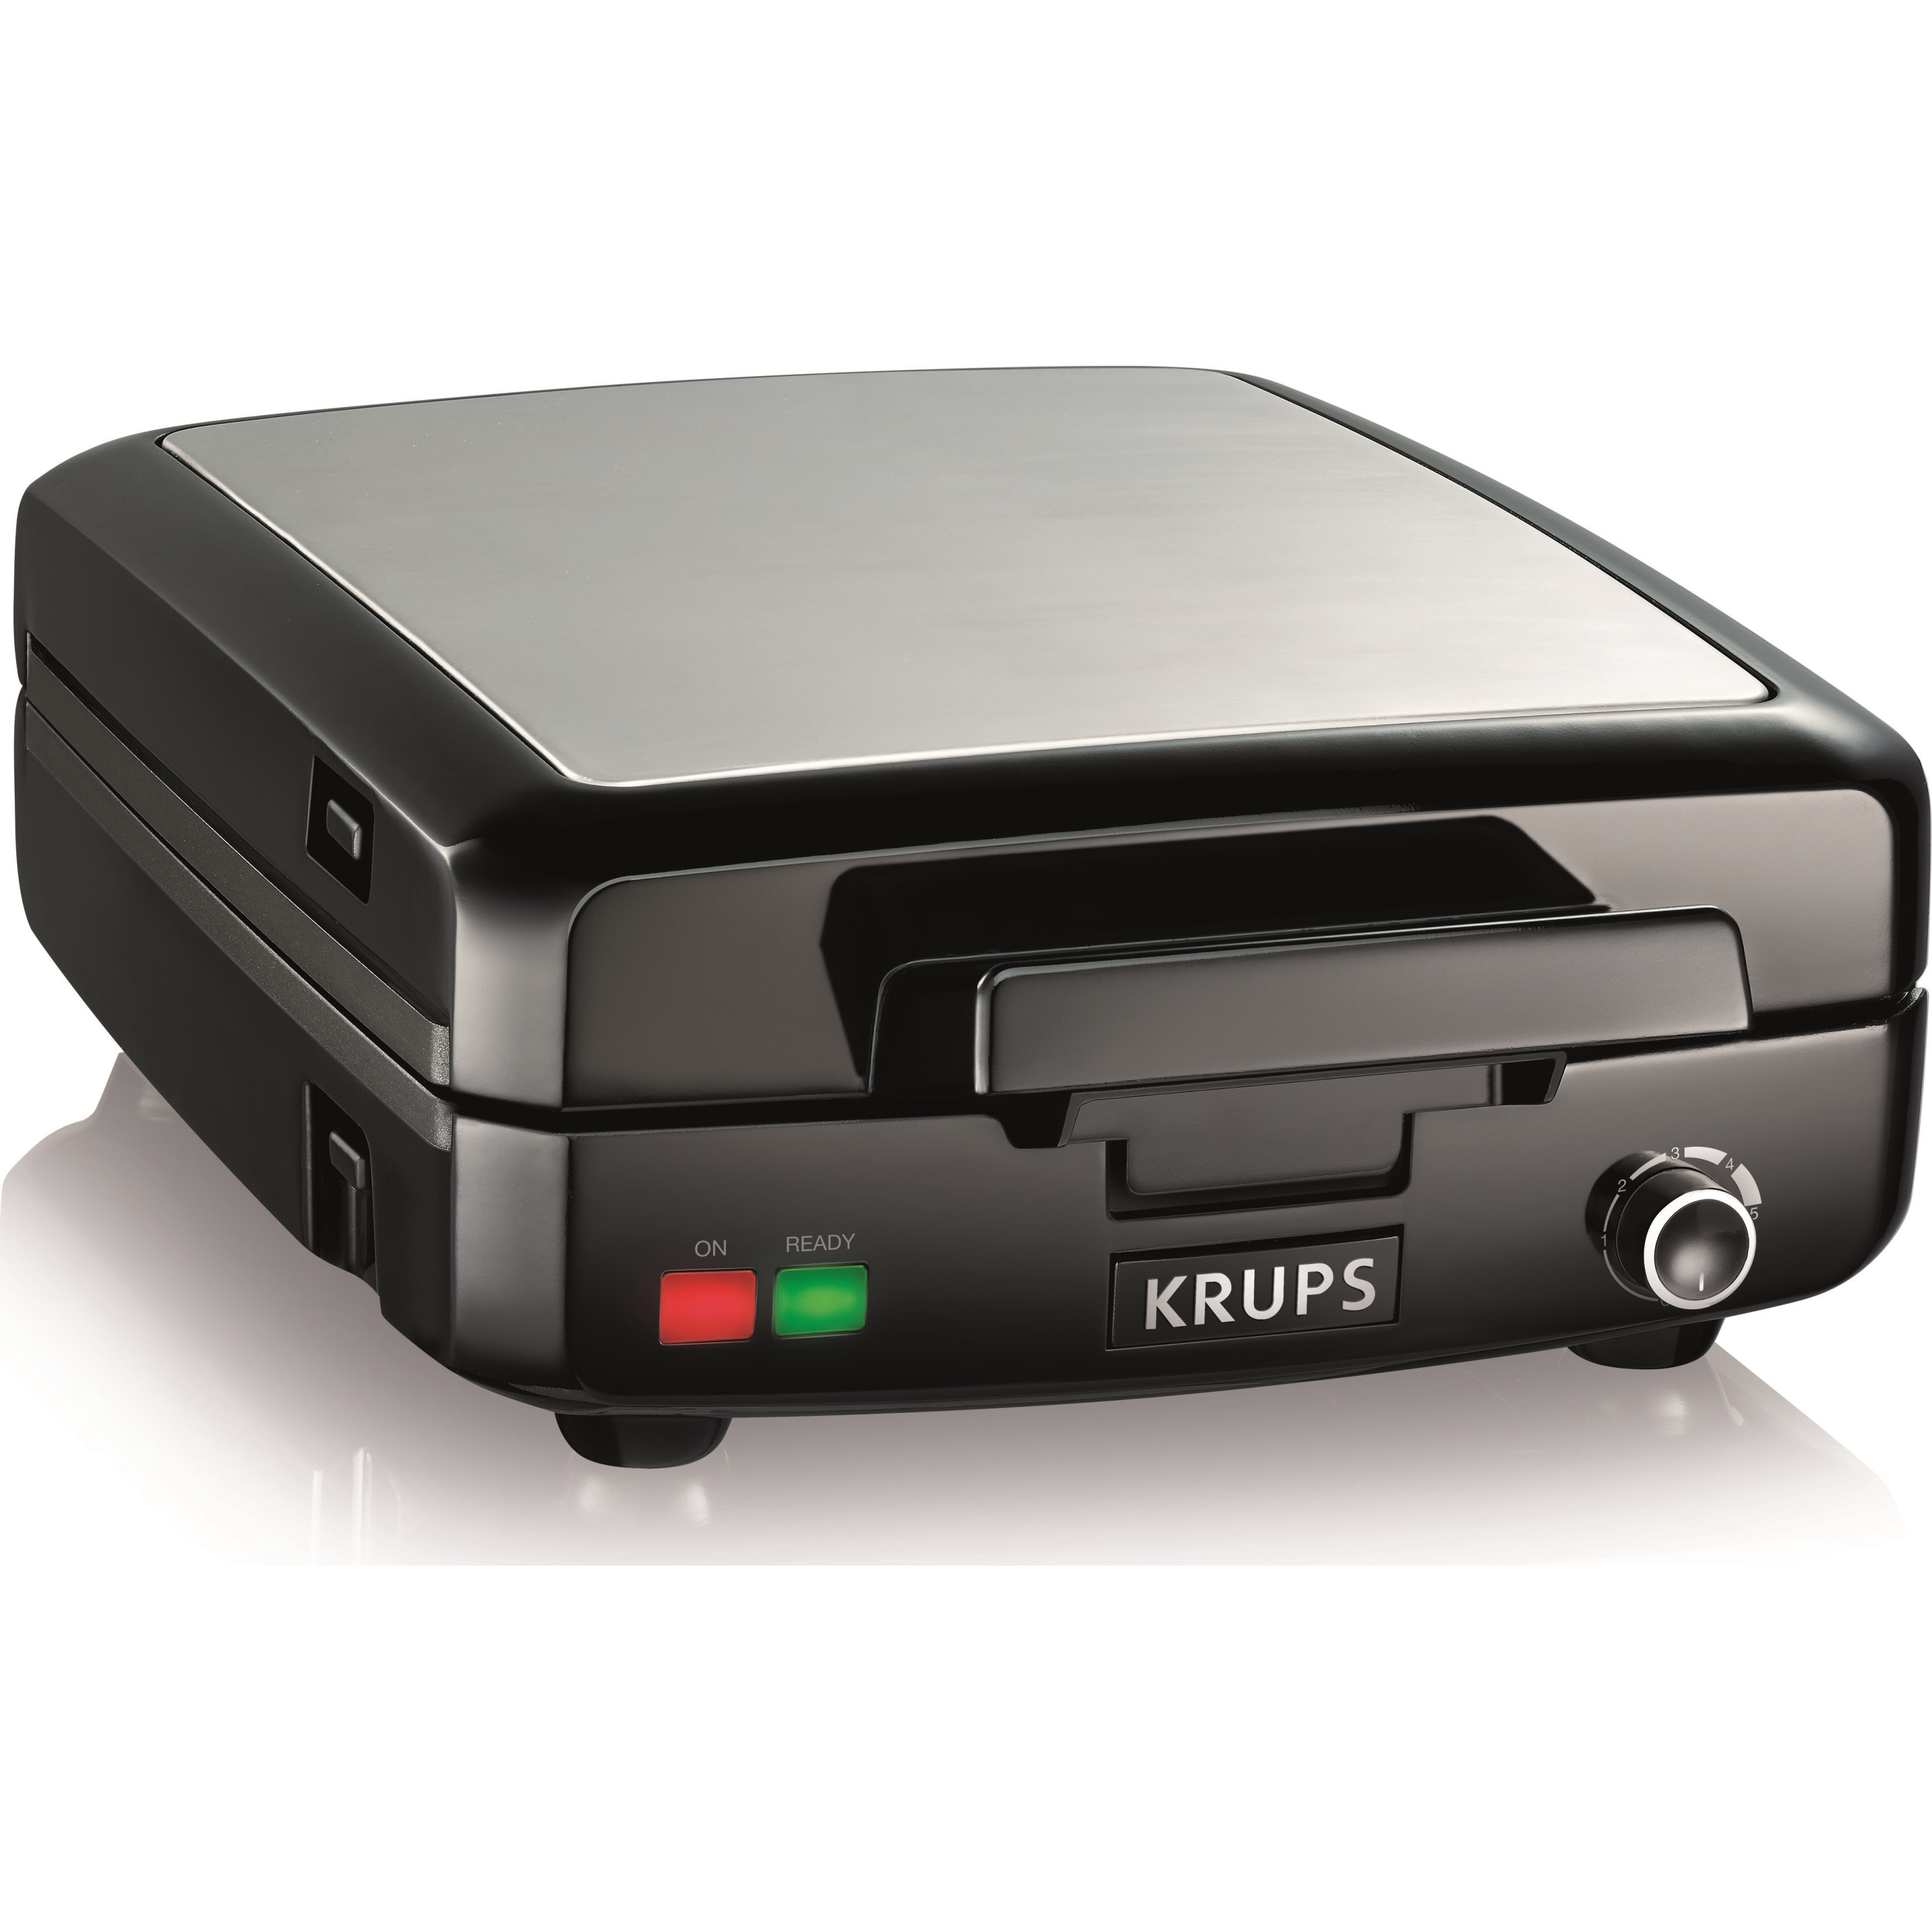 KRUPS, GQ502D51, 4-Slice Belgian Waffle Maker With Removable Plates, Stainless Steel